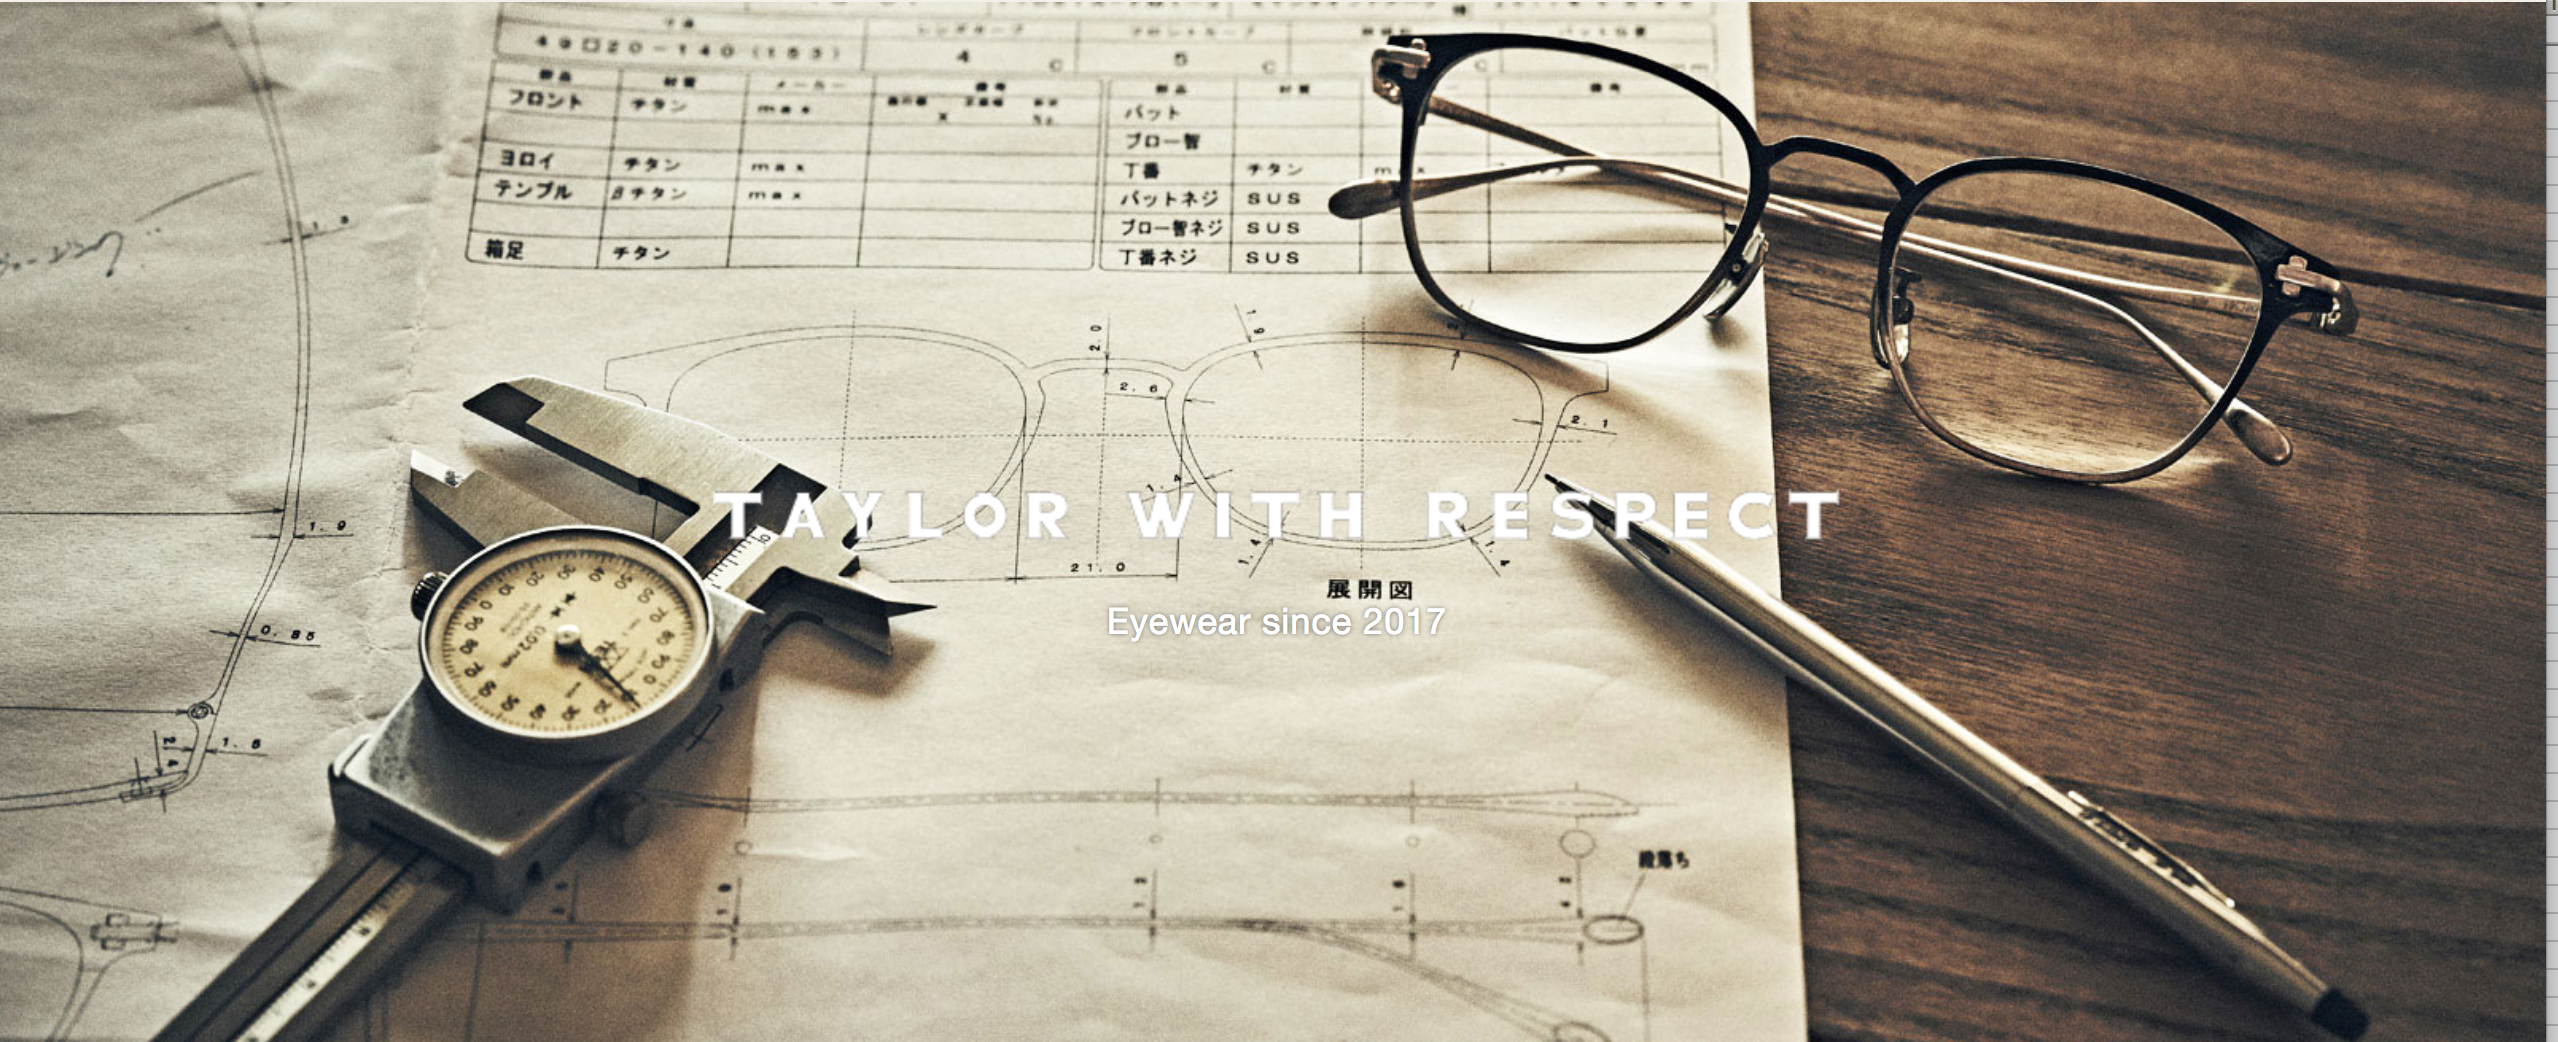 【TAYLOR WITH RESPECT フェア】開催中